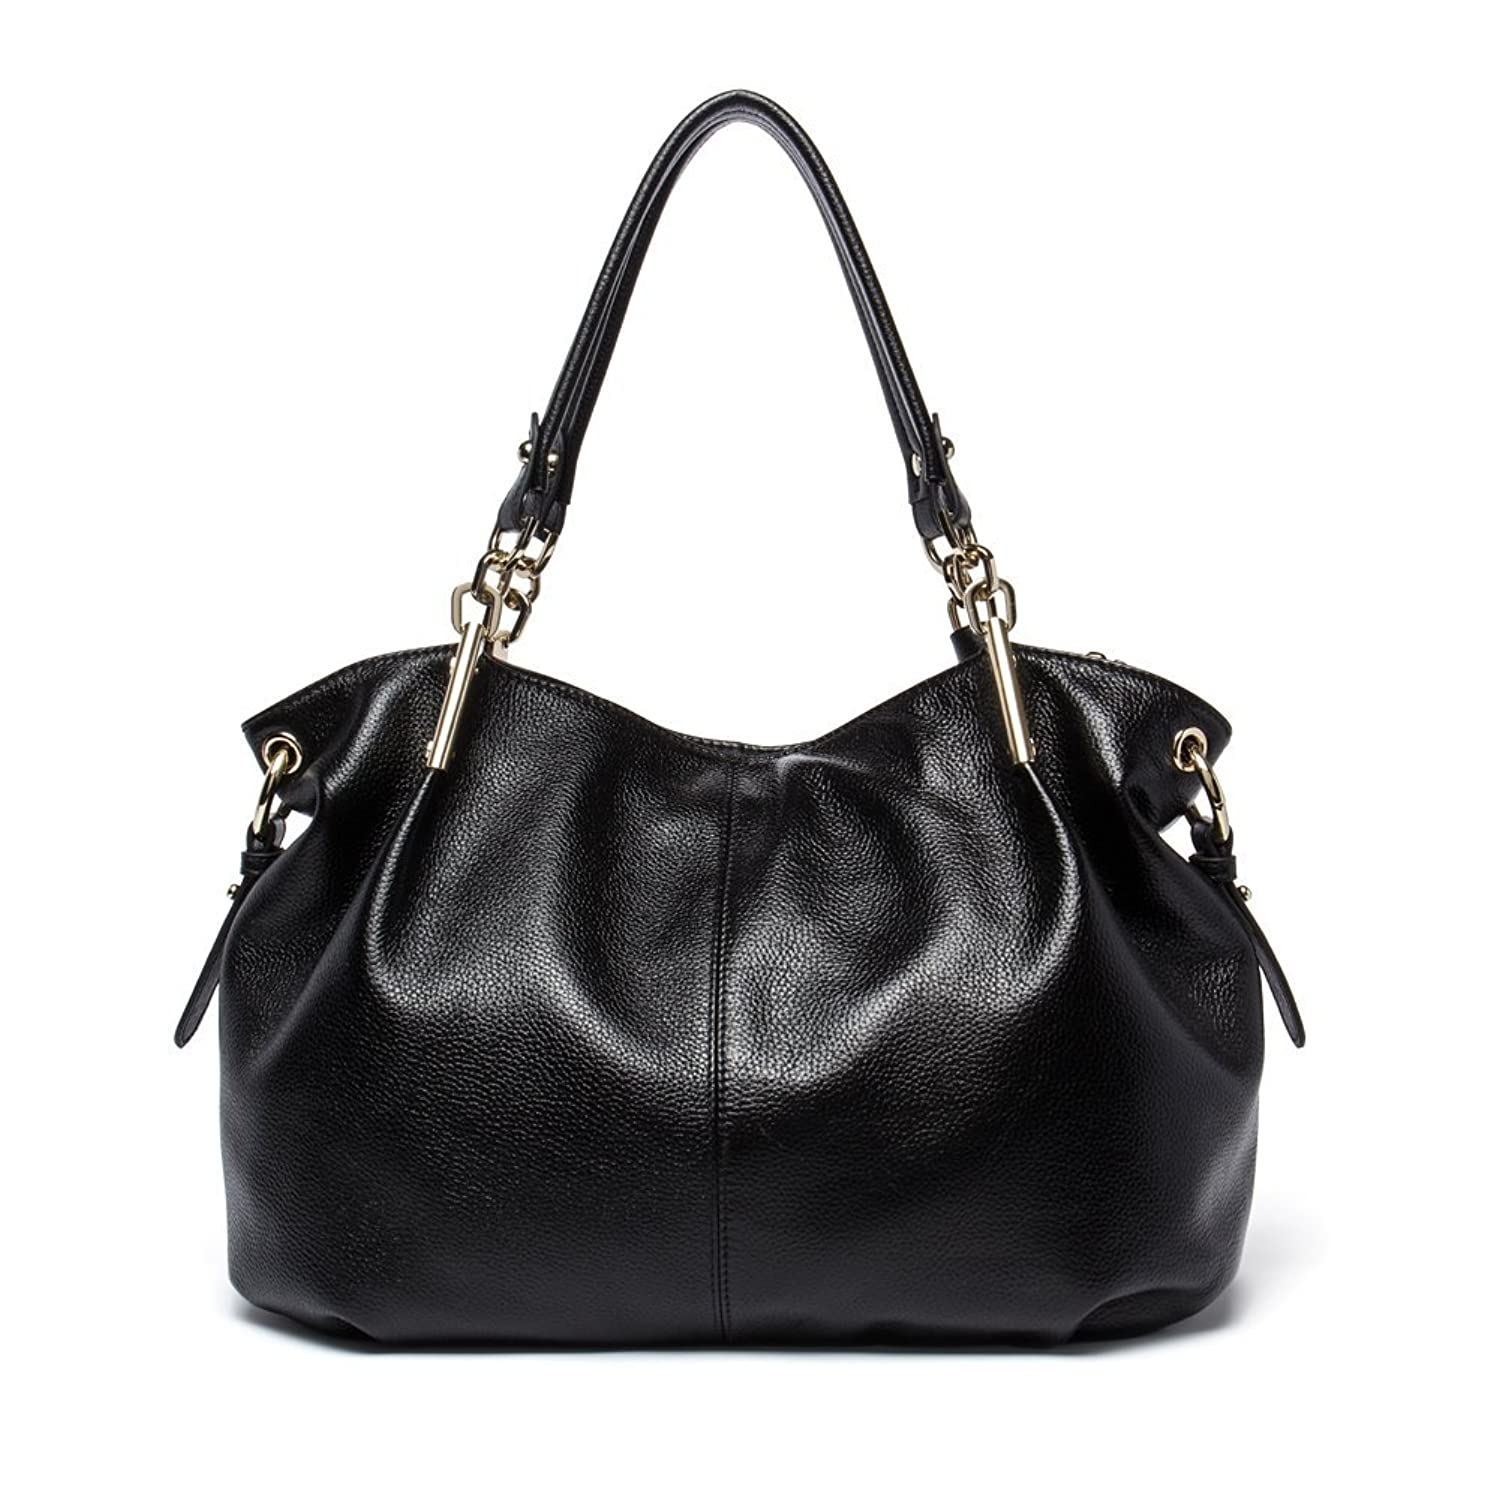 3476caeffe Amazon.com  BOSTANTEN Leather Handbags Tote Purses Shoulder Crossbody Bags  for Women Black  Shoes